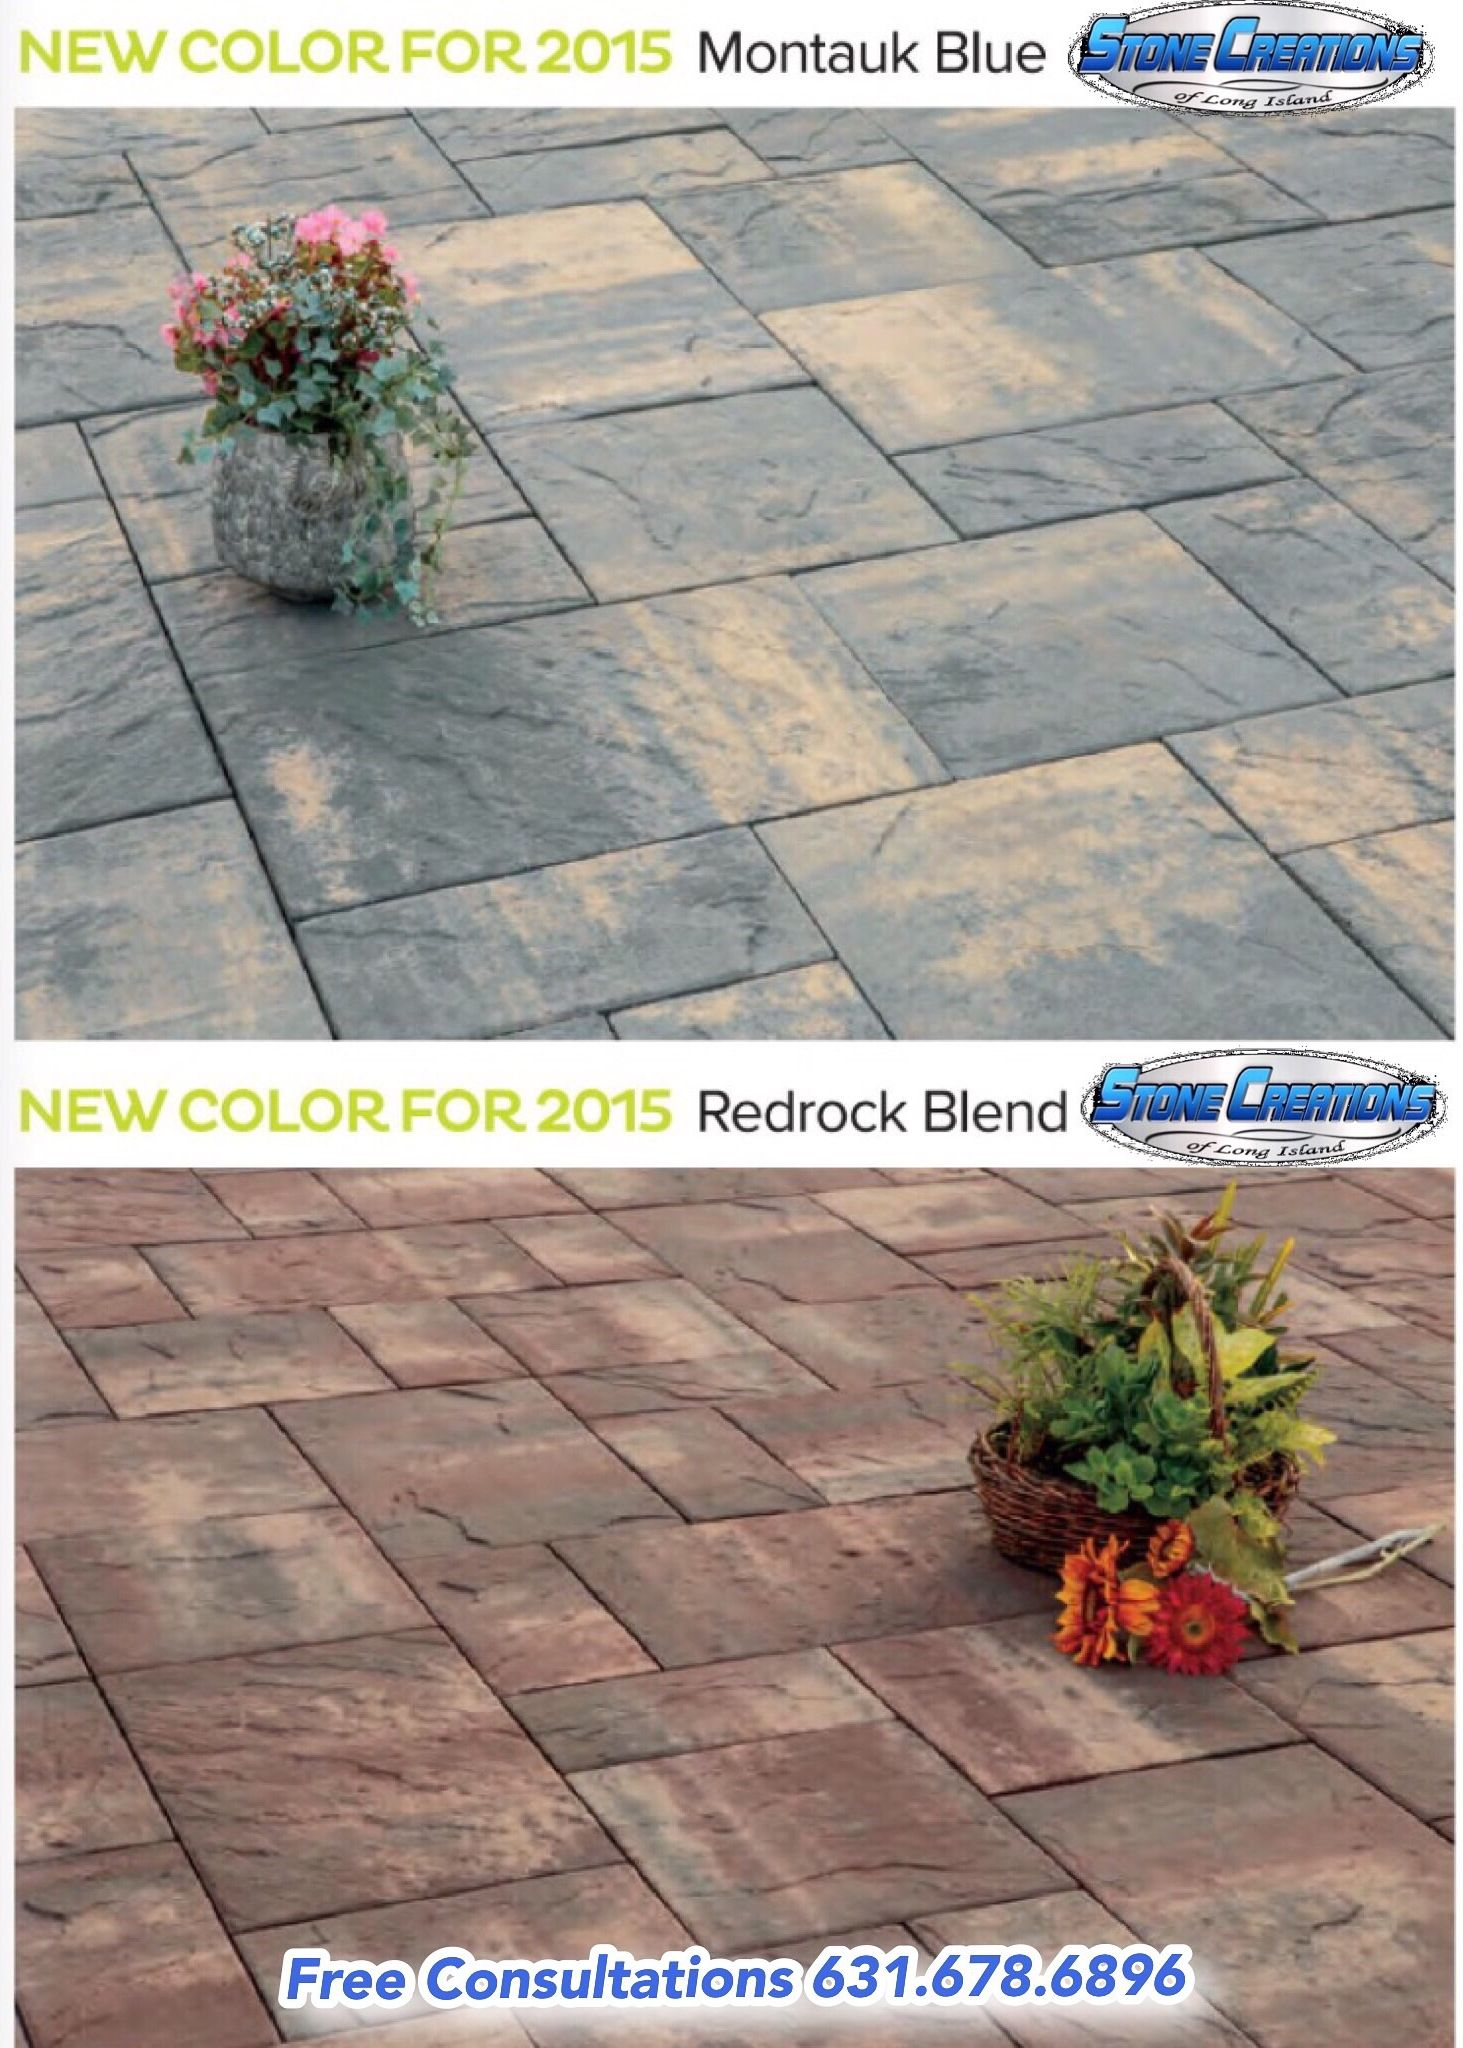 New Cambridge Paver Colors For 2015 www